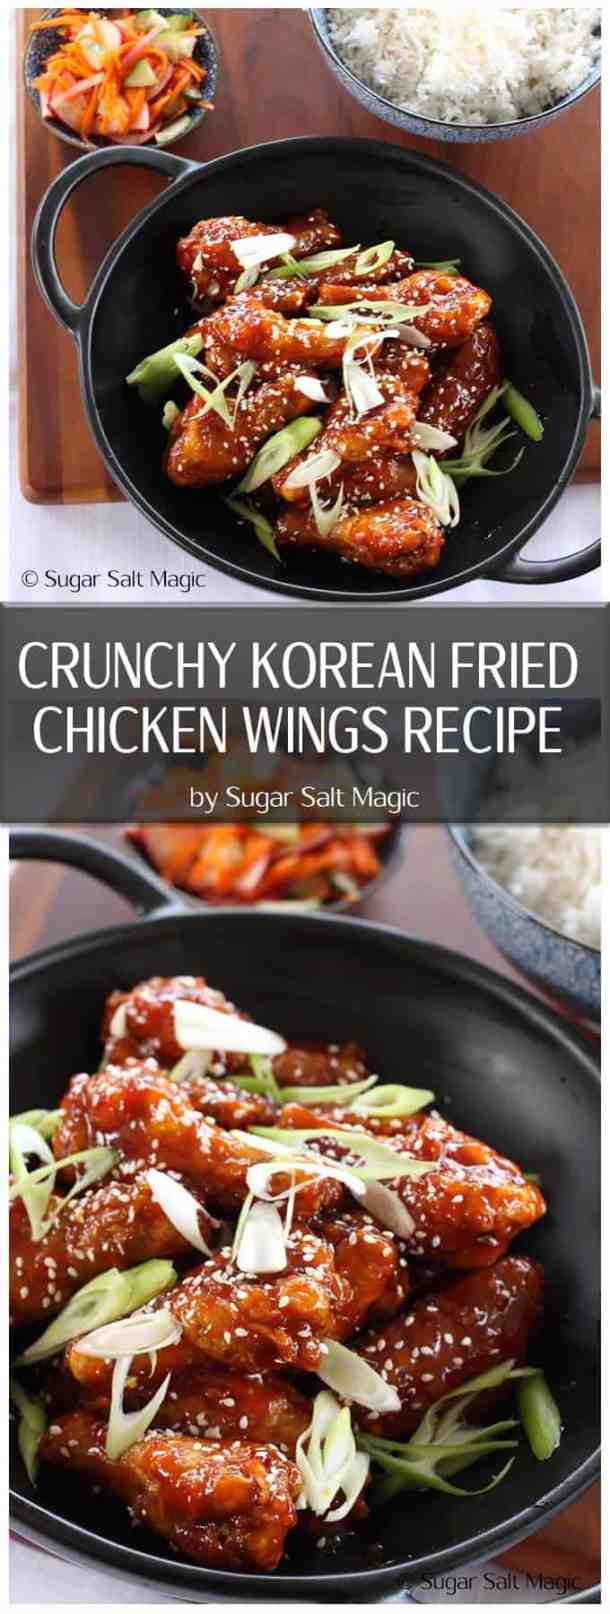 This Crunchy Korean Fried Chicken Wings recipe is a total winner. Affectionately known as KFC, they are fried until crispy, then slathered in a thick, sweet and spicy sauce. #koreanfriedchicken #koreanchicken